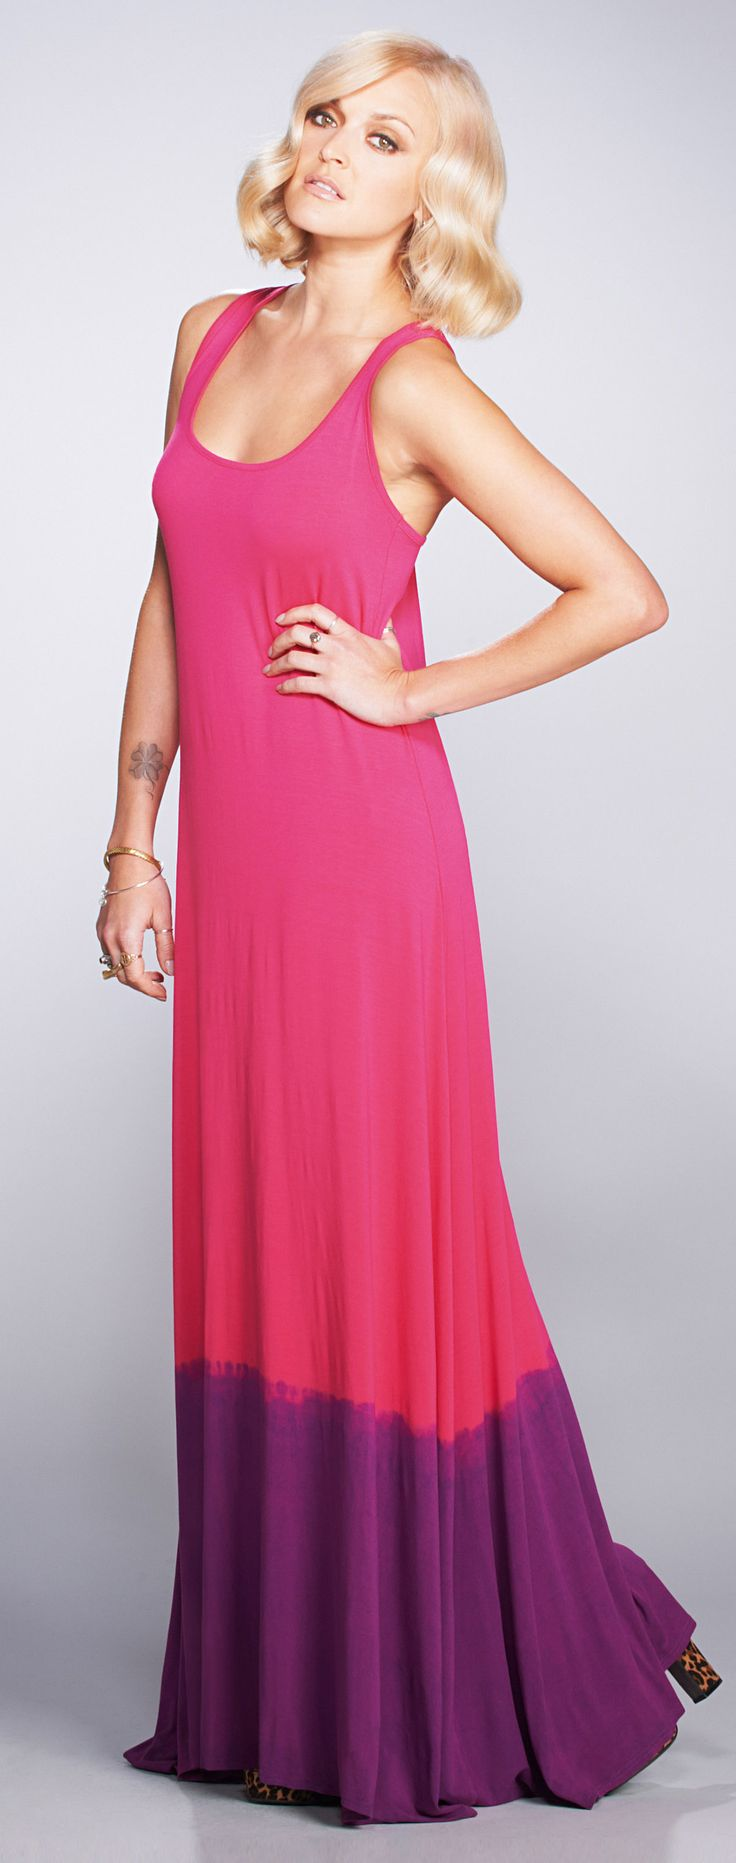 Dresses for apple shaped women - What To Wear If You Re A Top Heavy Apple Shaped Woman Http